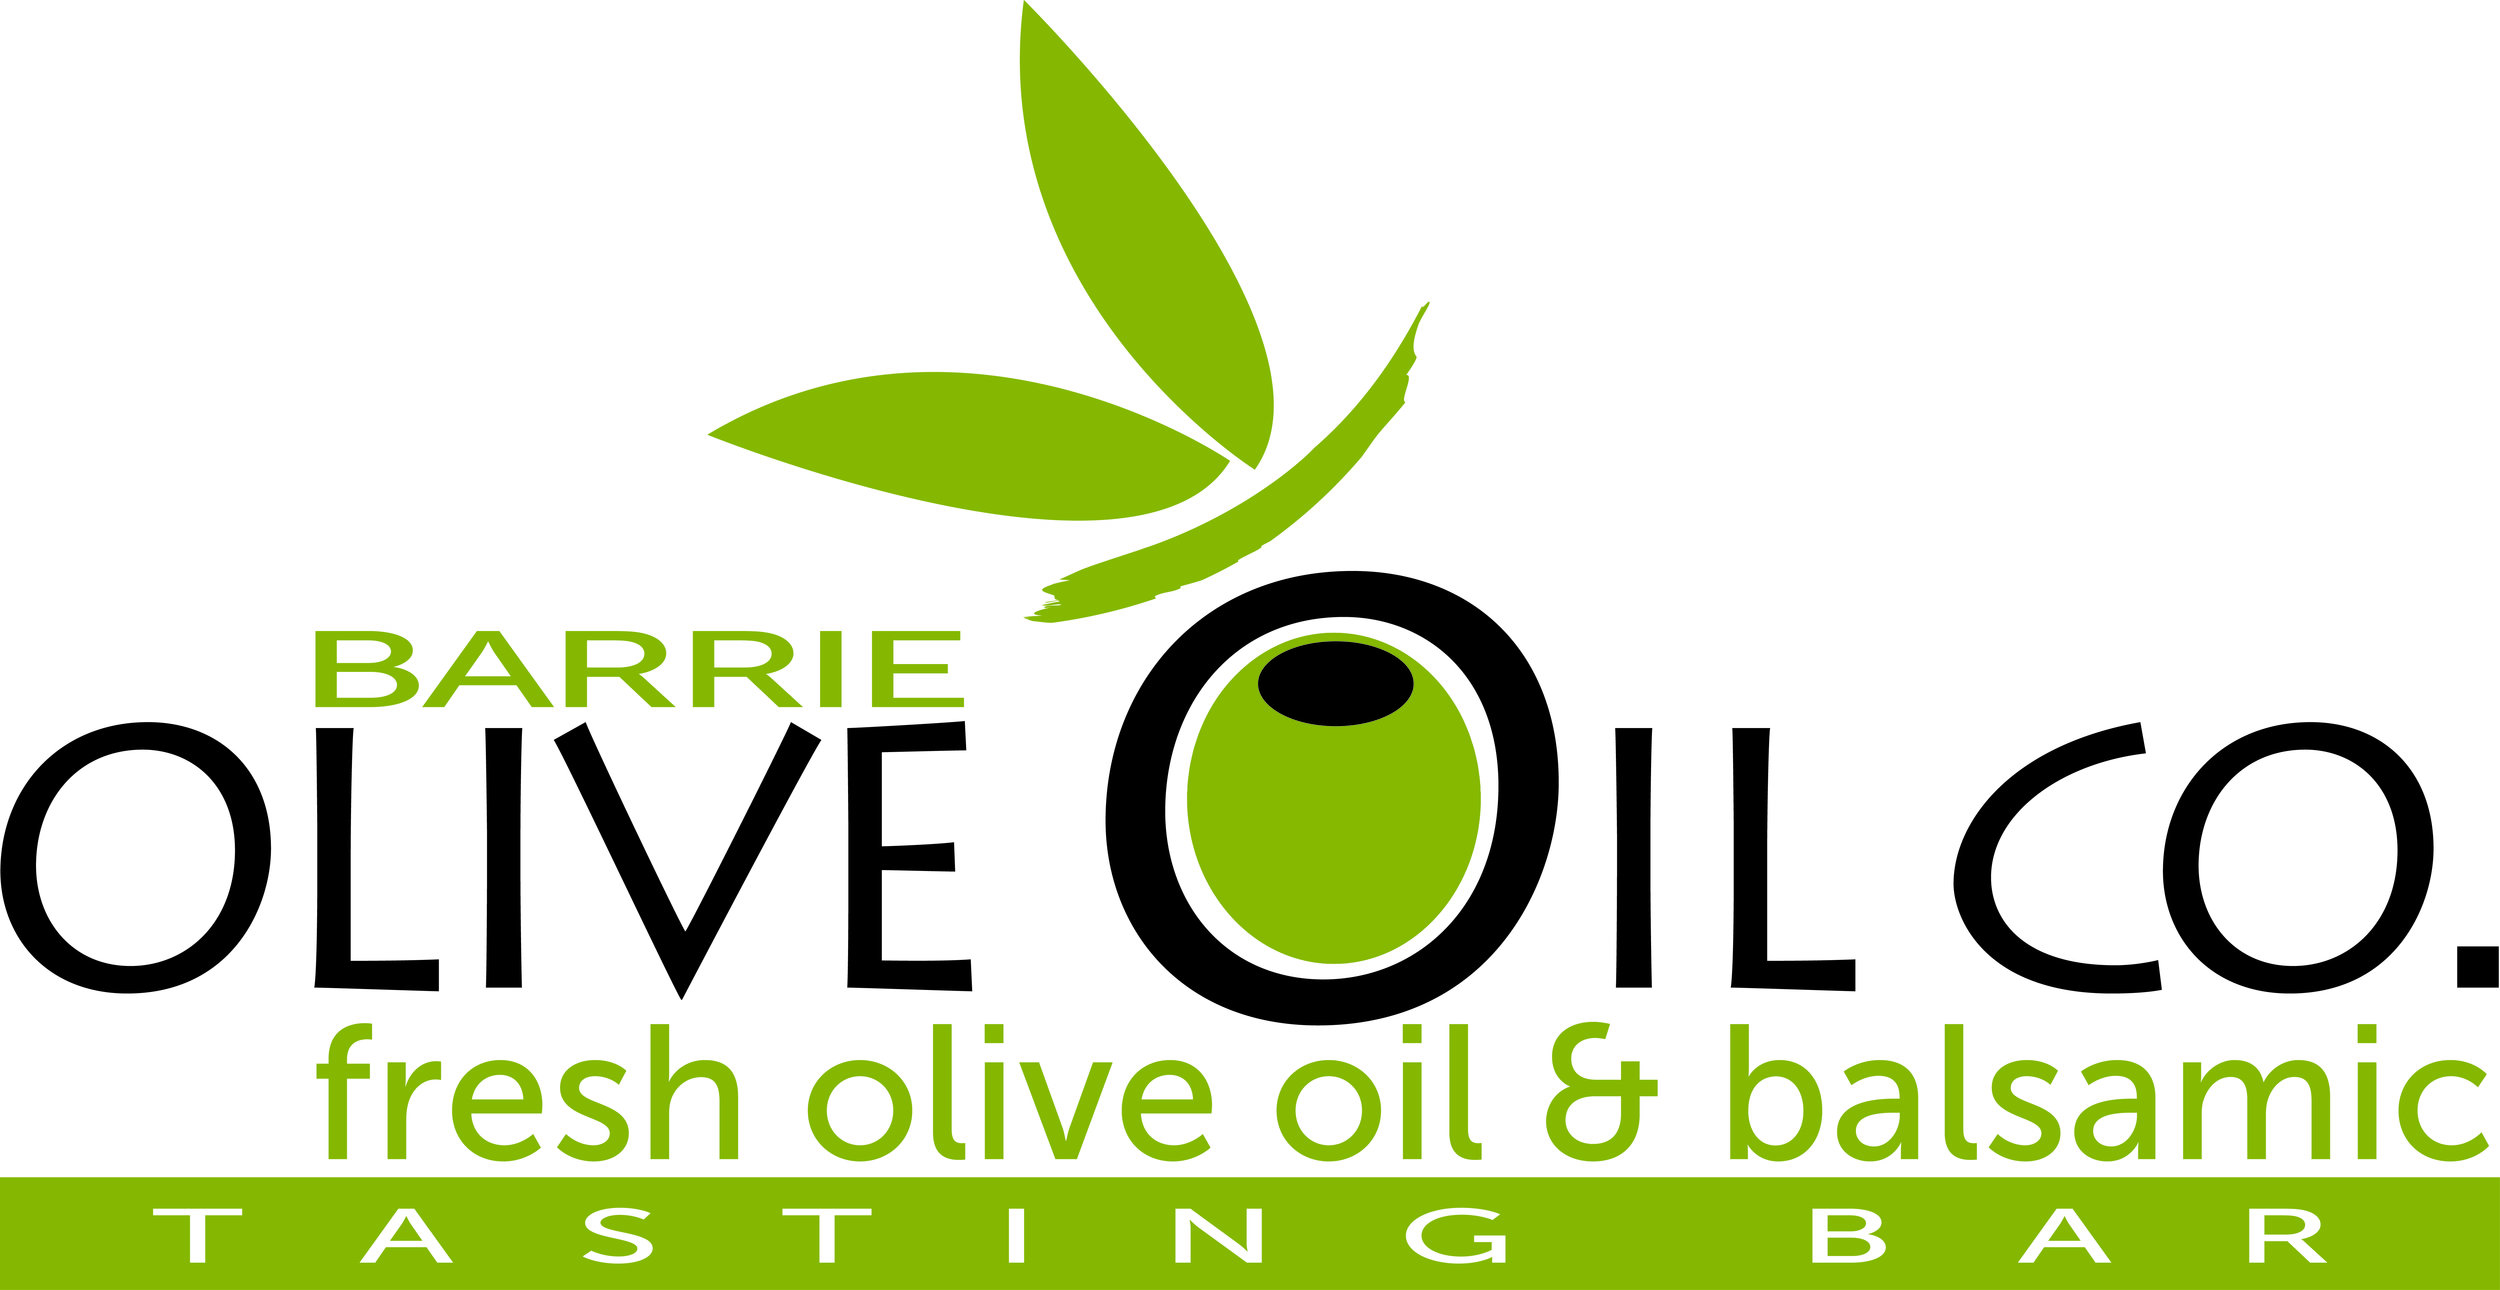 BarrieOliveOil Co._Logo.jpg